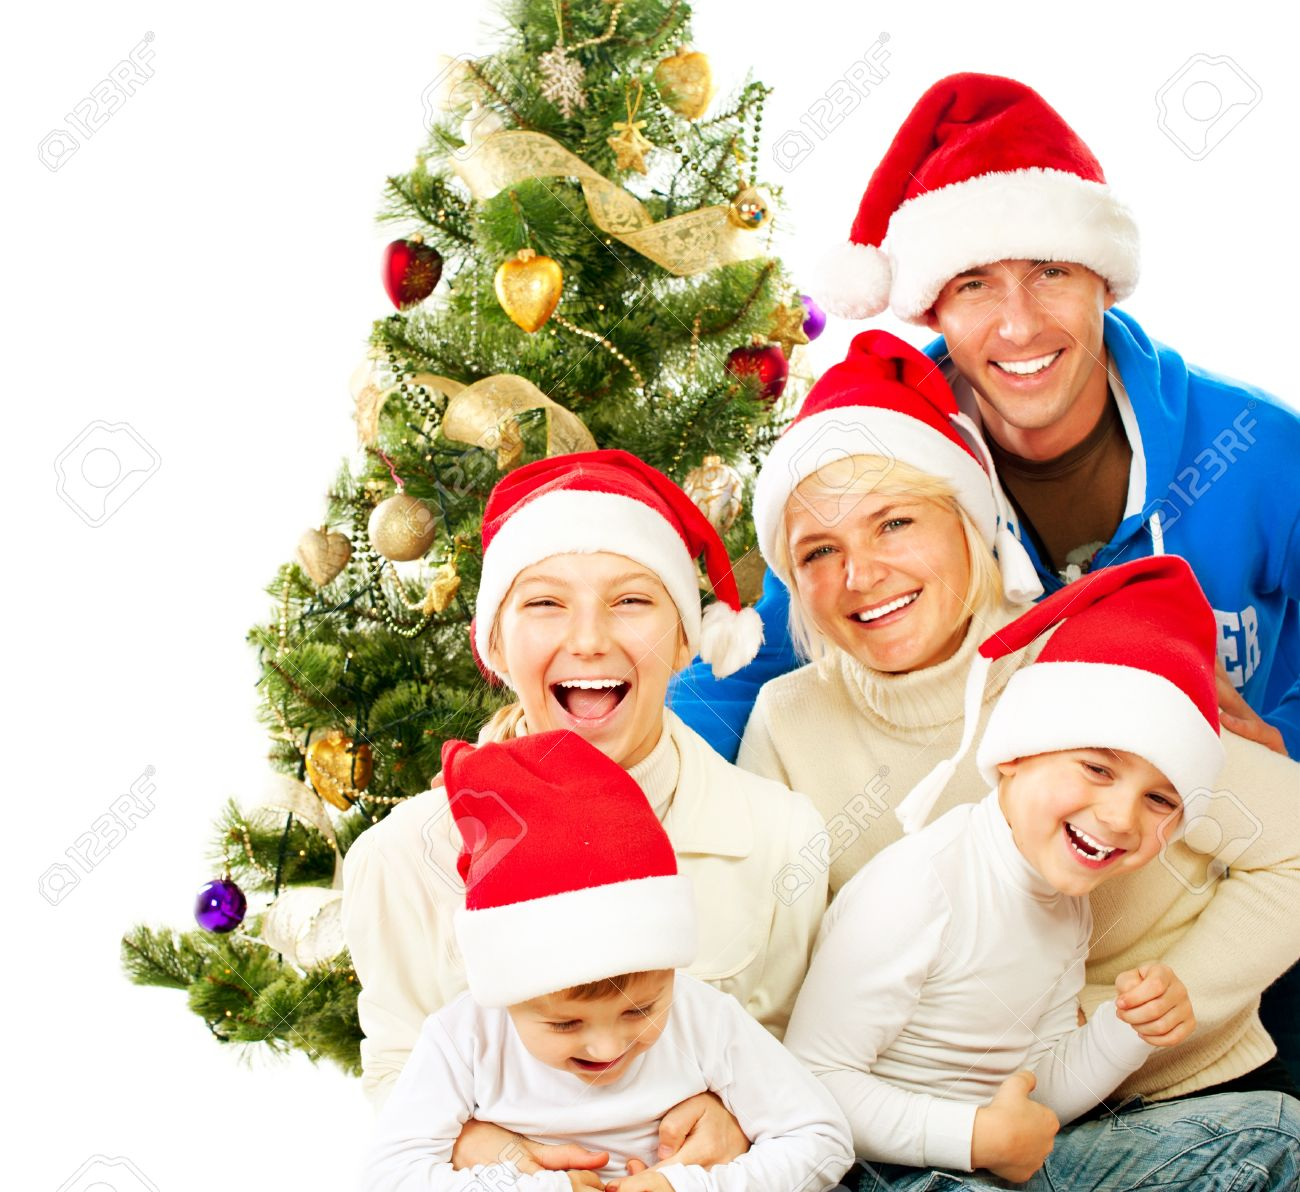 Happy Christmas Family  Big Family with Kids Stock Photo - 16590174